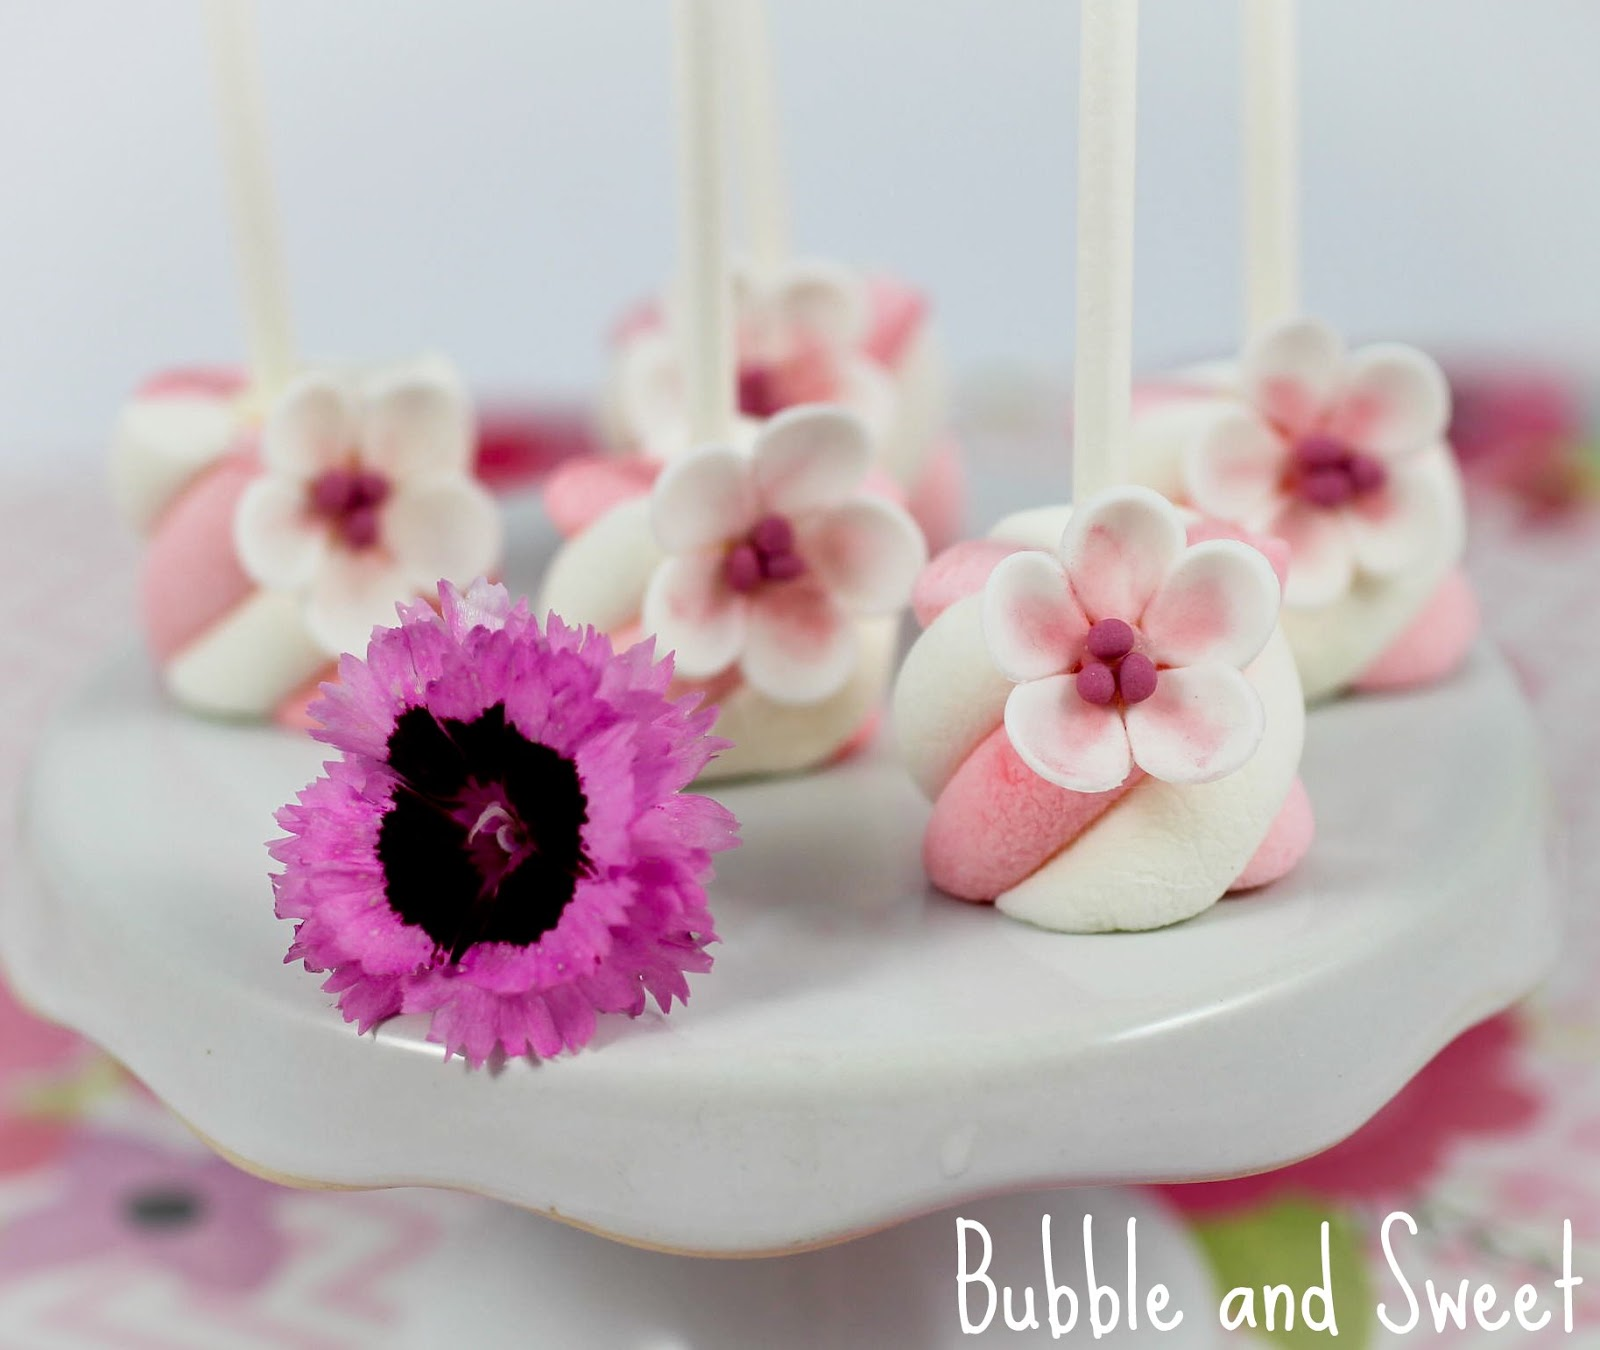 A+pink+polka+dot+pink+swirl+rope+marshmallow+pops+pretty+sticks+close